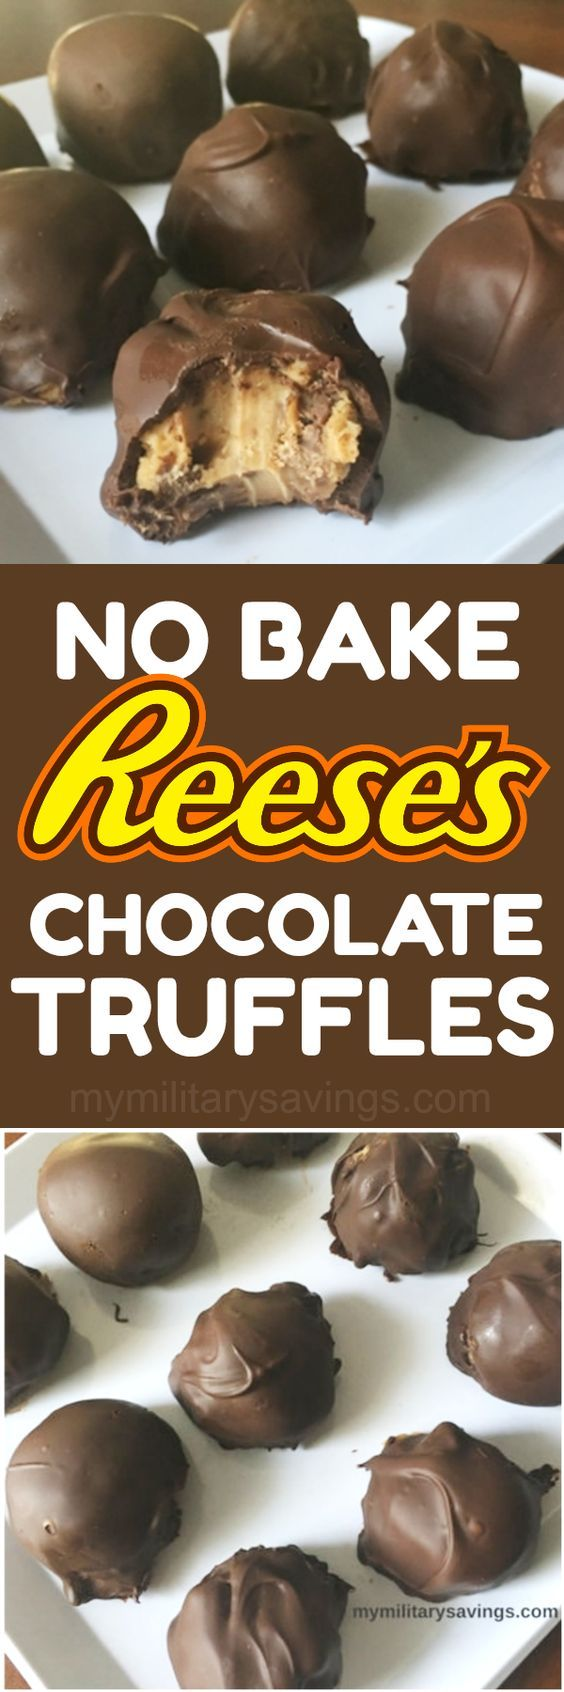 AD DELICIOUS No Bake Reese's Peanut Butter Cup Chocolate Truffles recipe! Add this to your dessert recipes board!